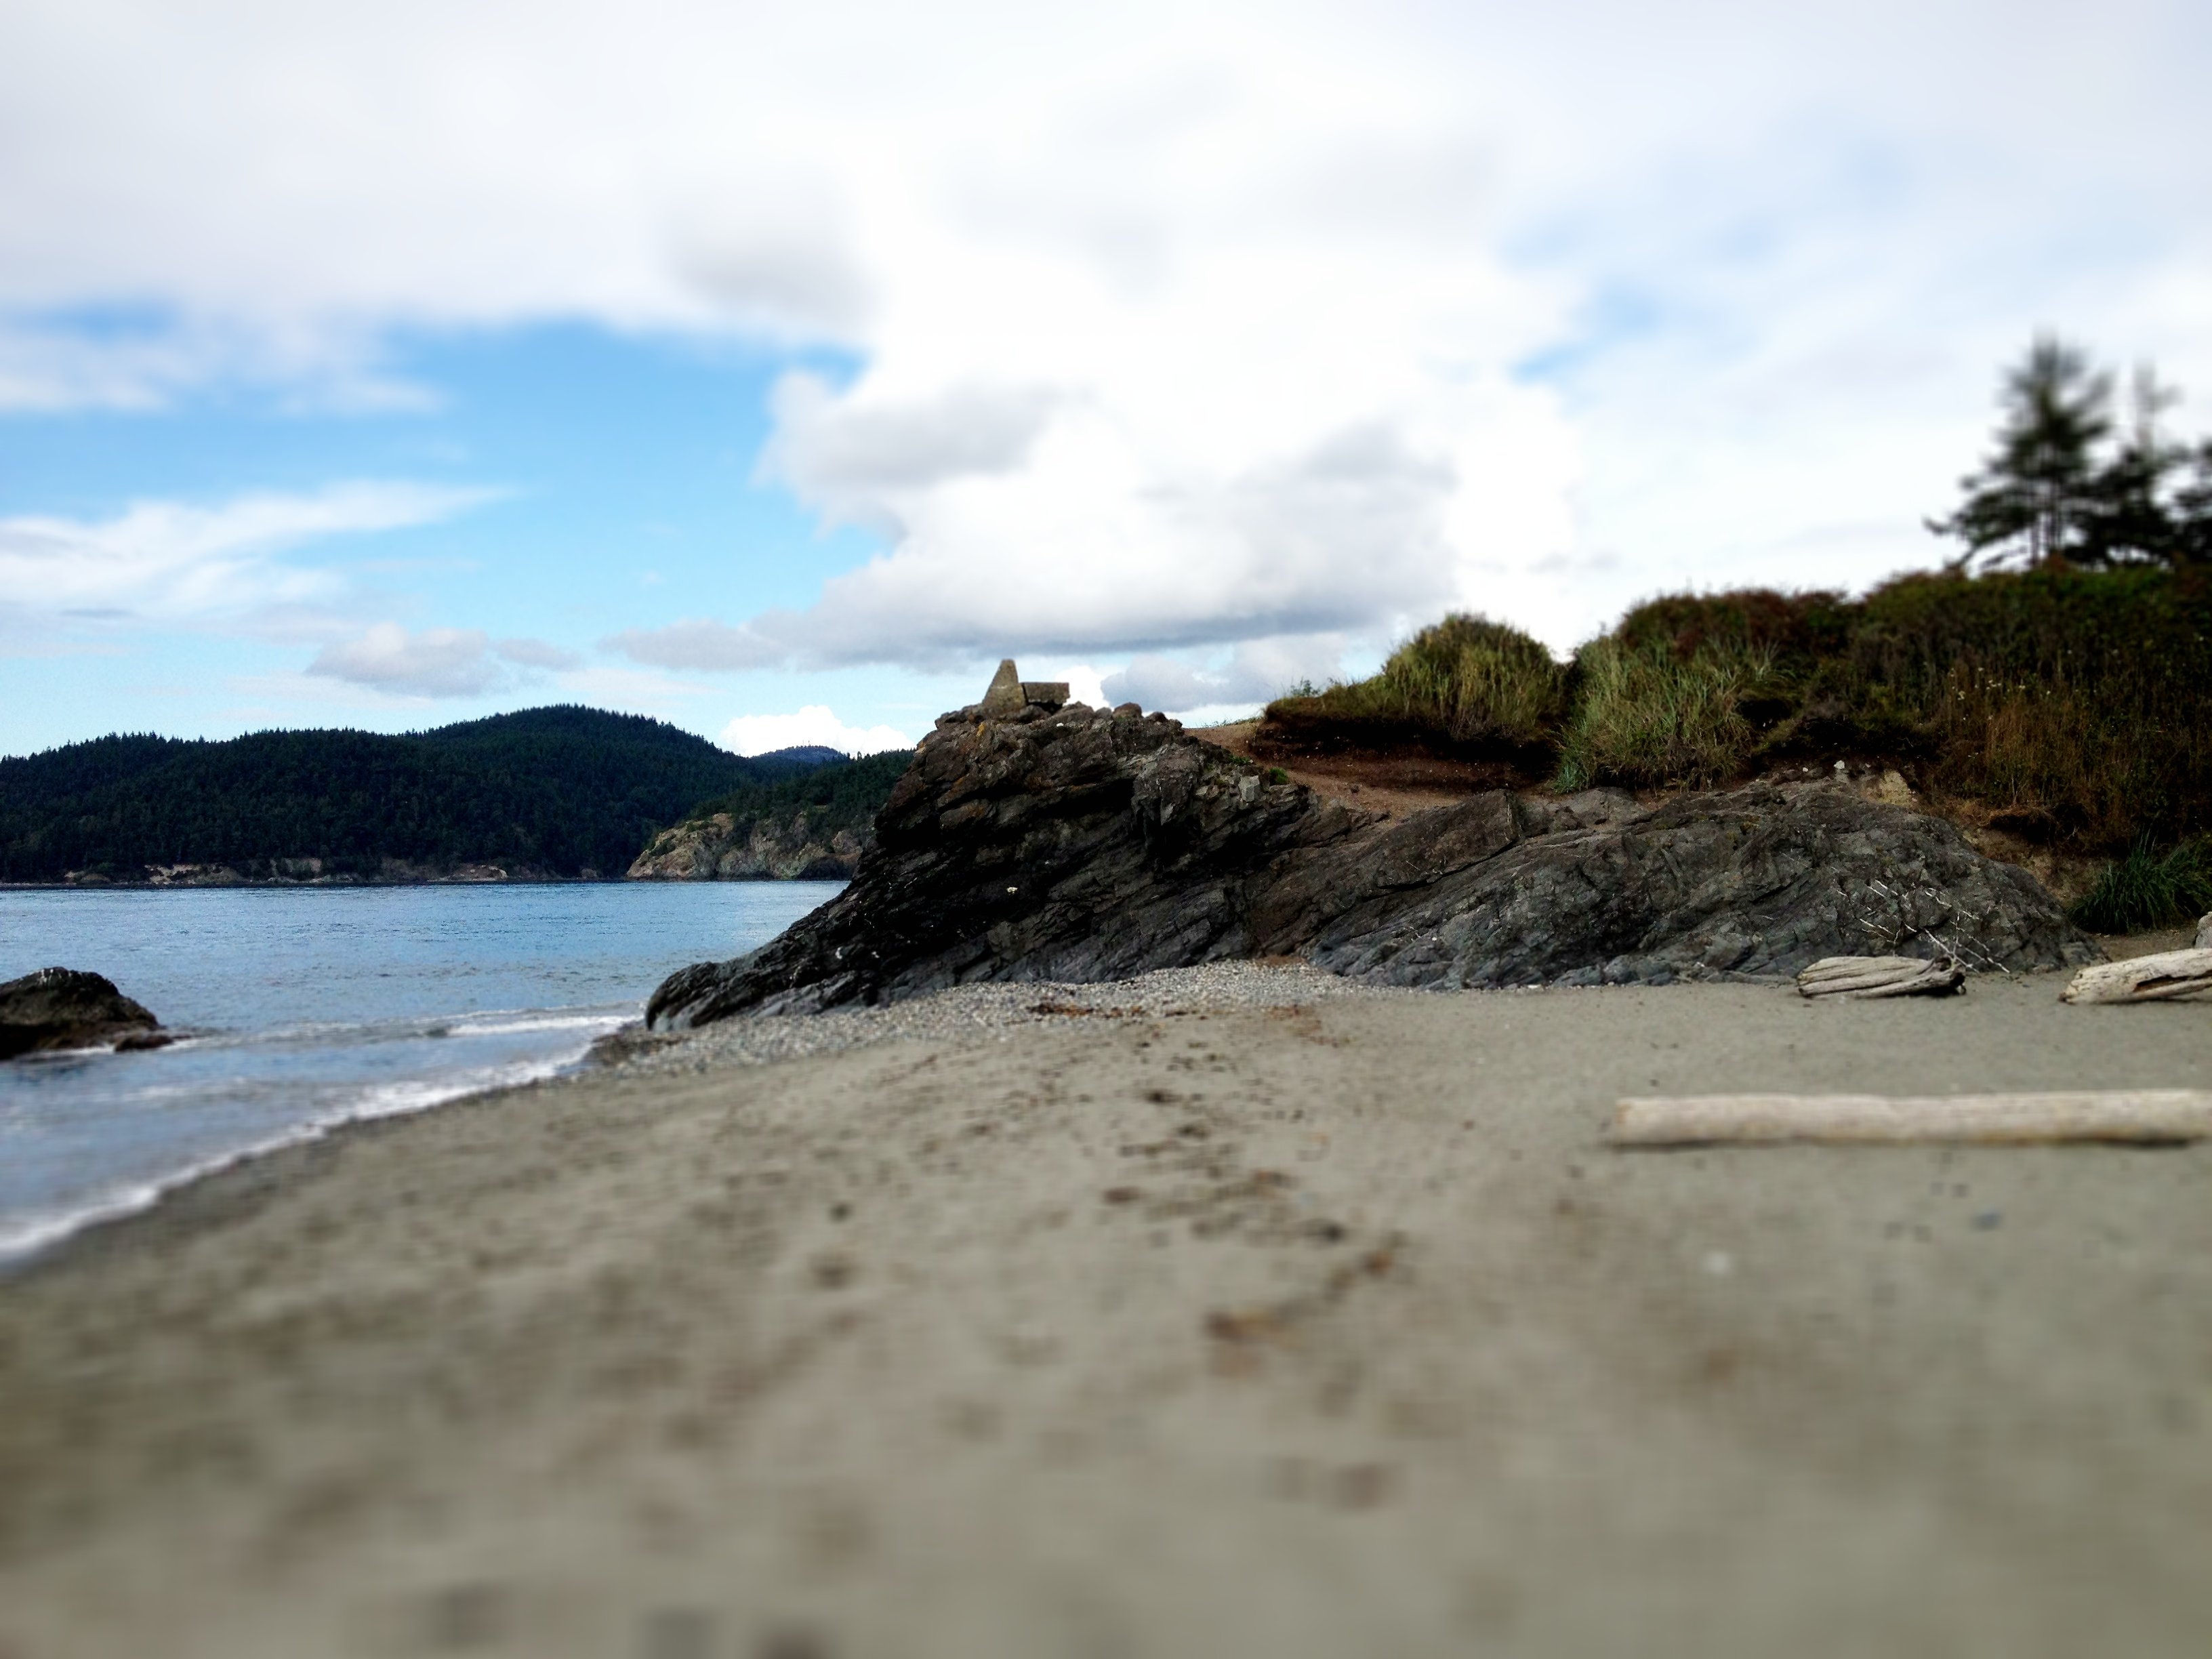 A photo of Whidbey Island beach